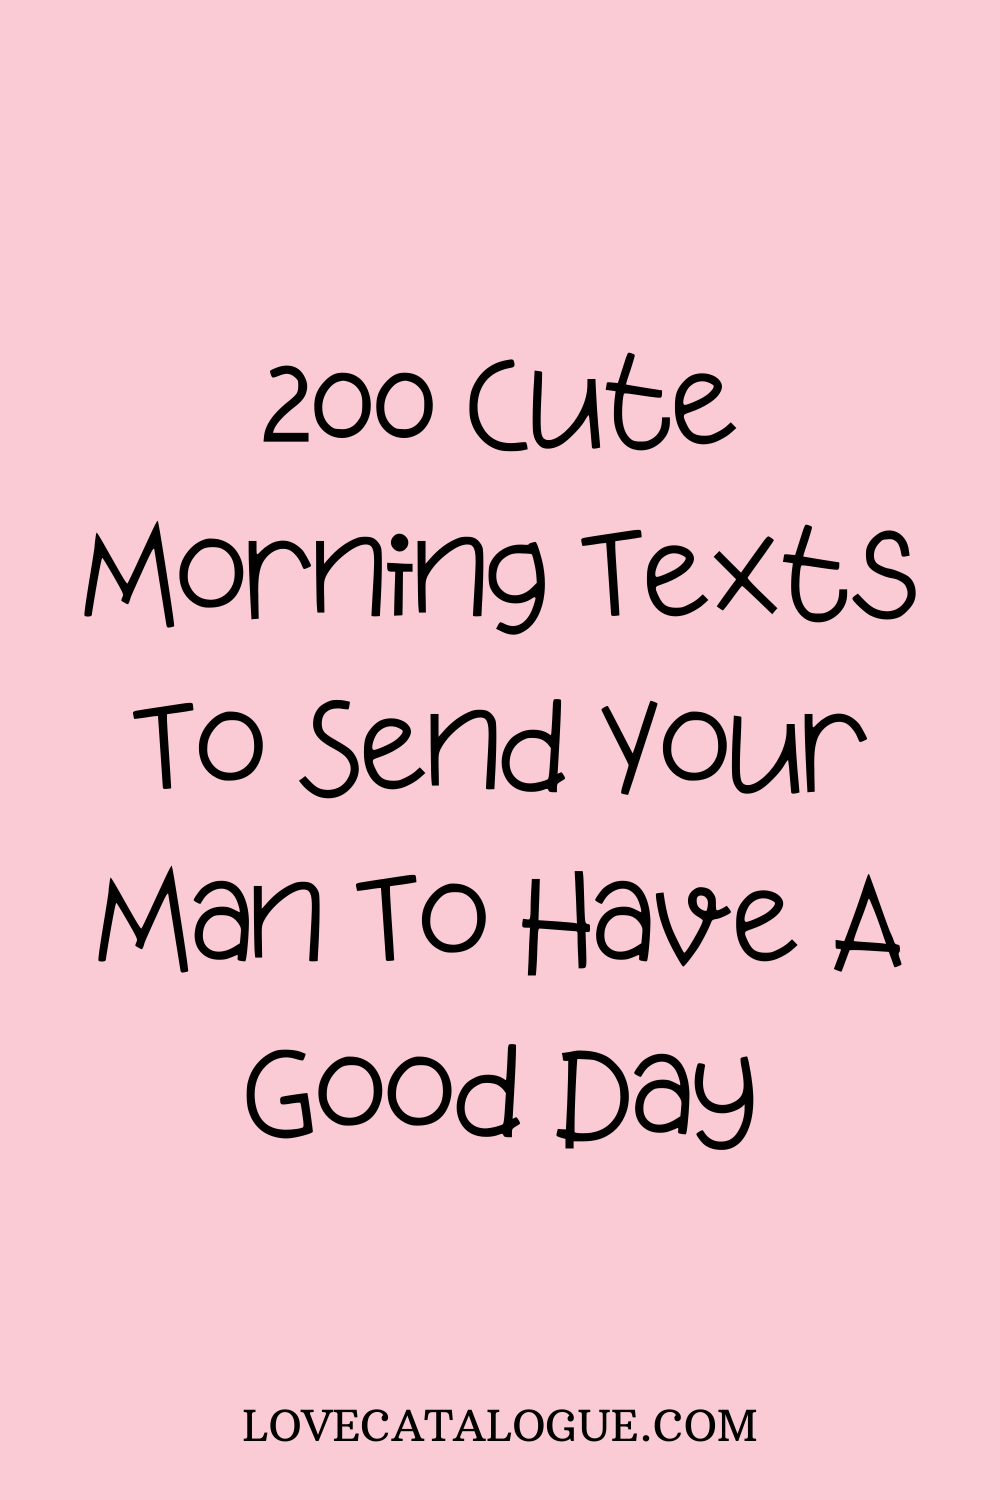 200 Cute morning texts to send your man to have a good day